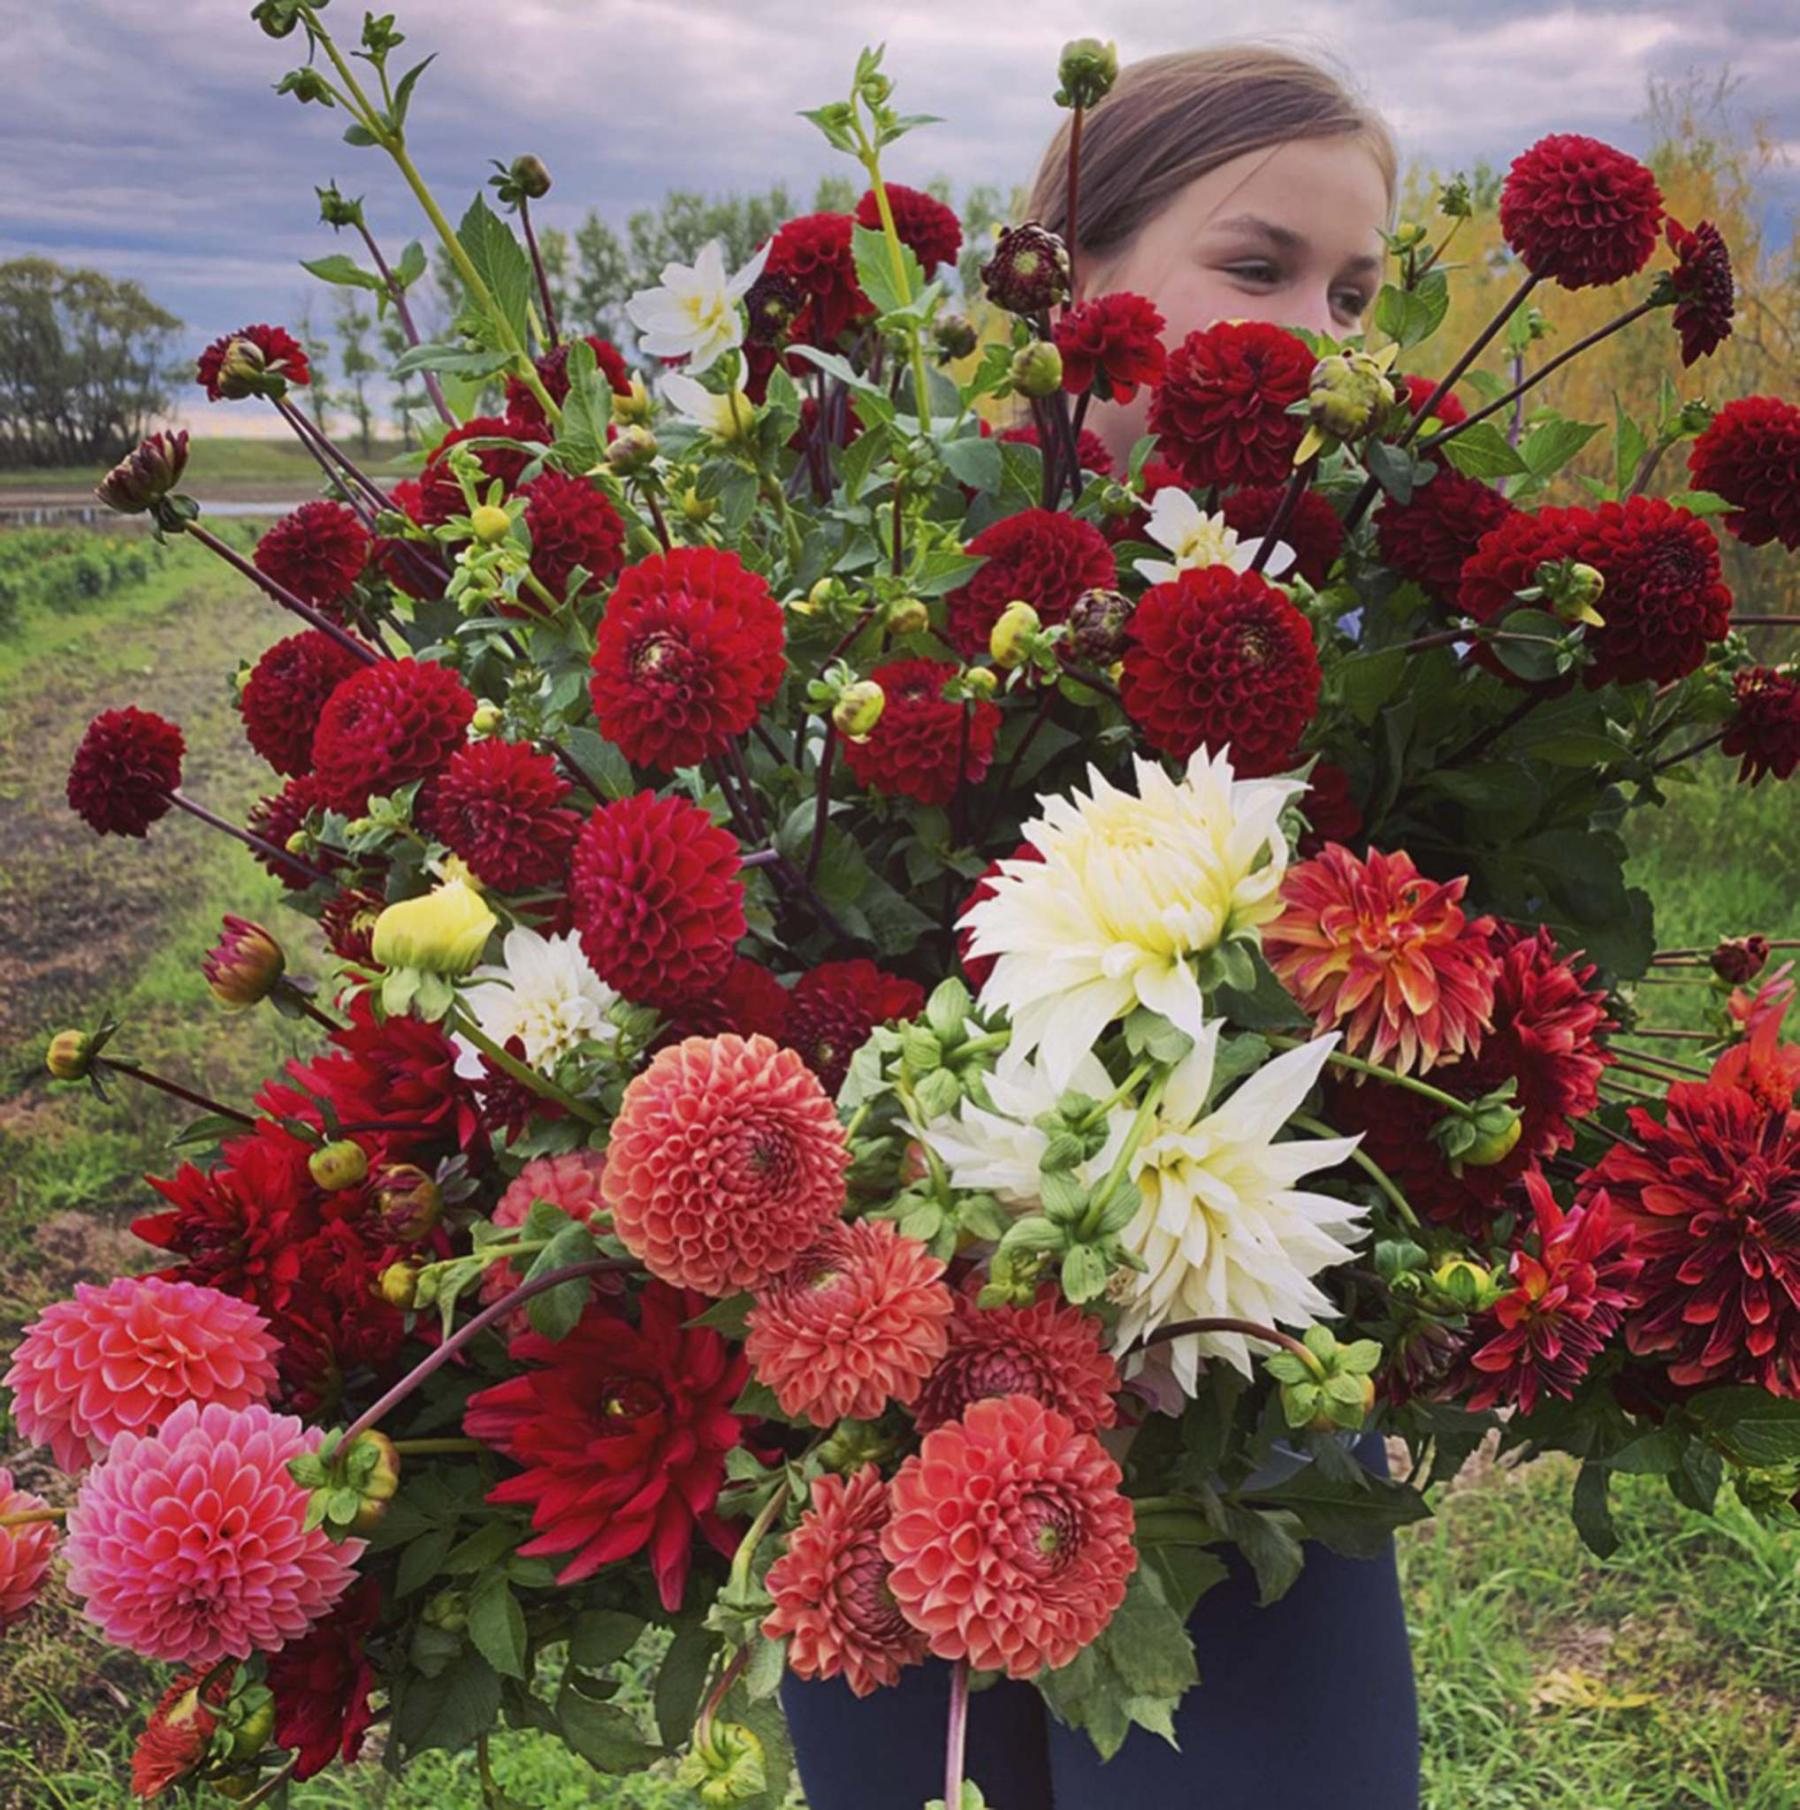 <p>Prairie Grove Greenhouse</p><p>Prairie Grove Greenhouse is Manitoba's newest dahlia farm, producing armfuls of cut-flower dahlias.</p></p></p>